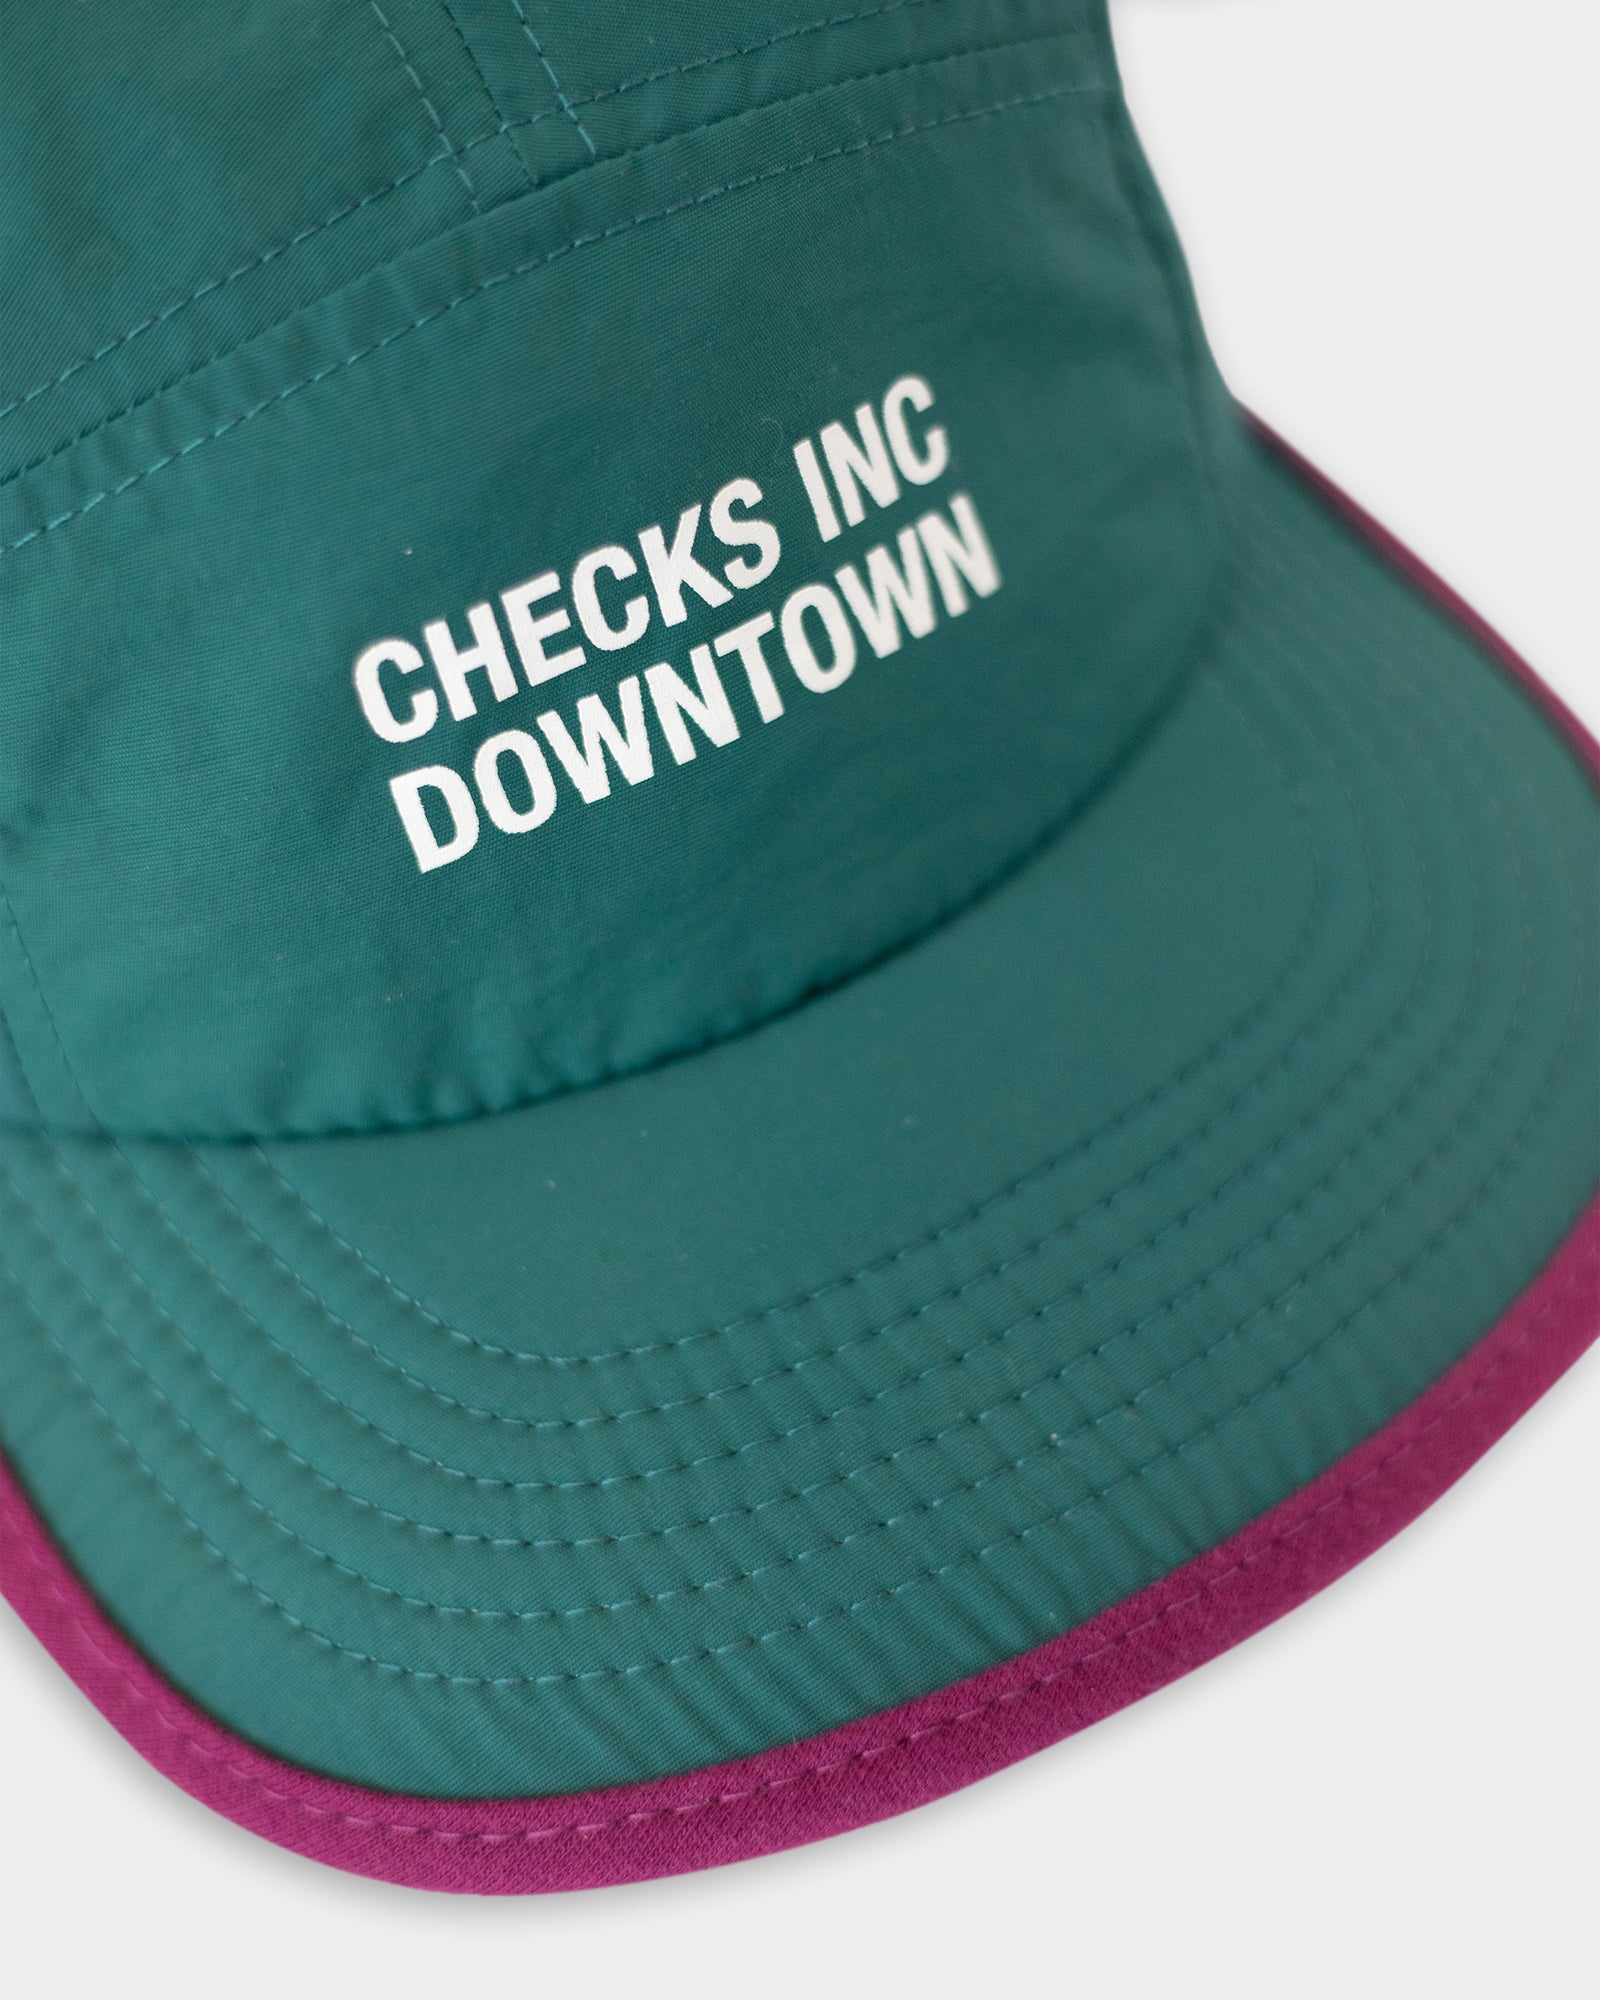 Load image into Gallery viewer, Nylon Running Cap Teal | CHECKS DOWNTOWN